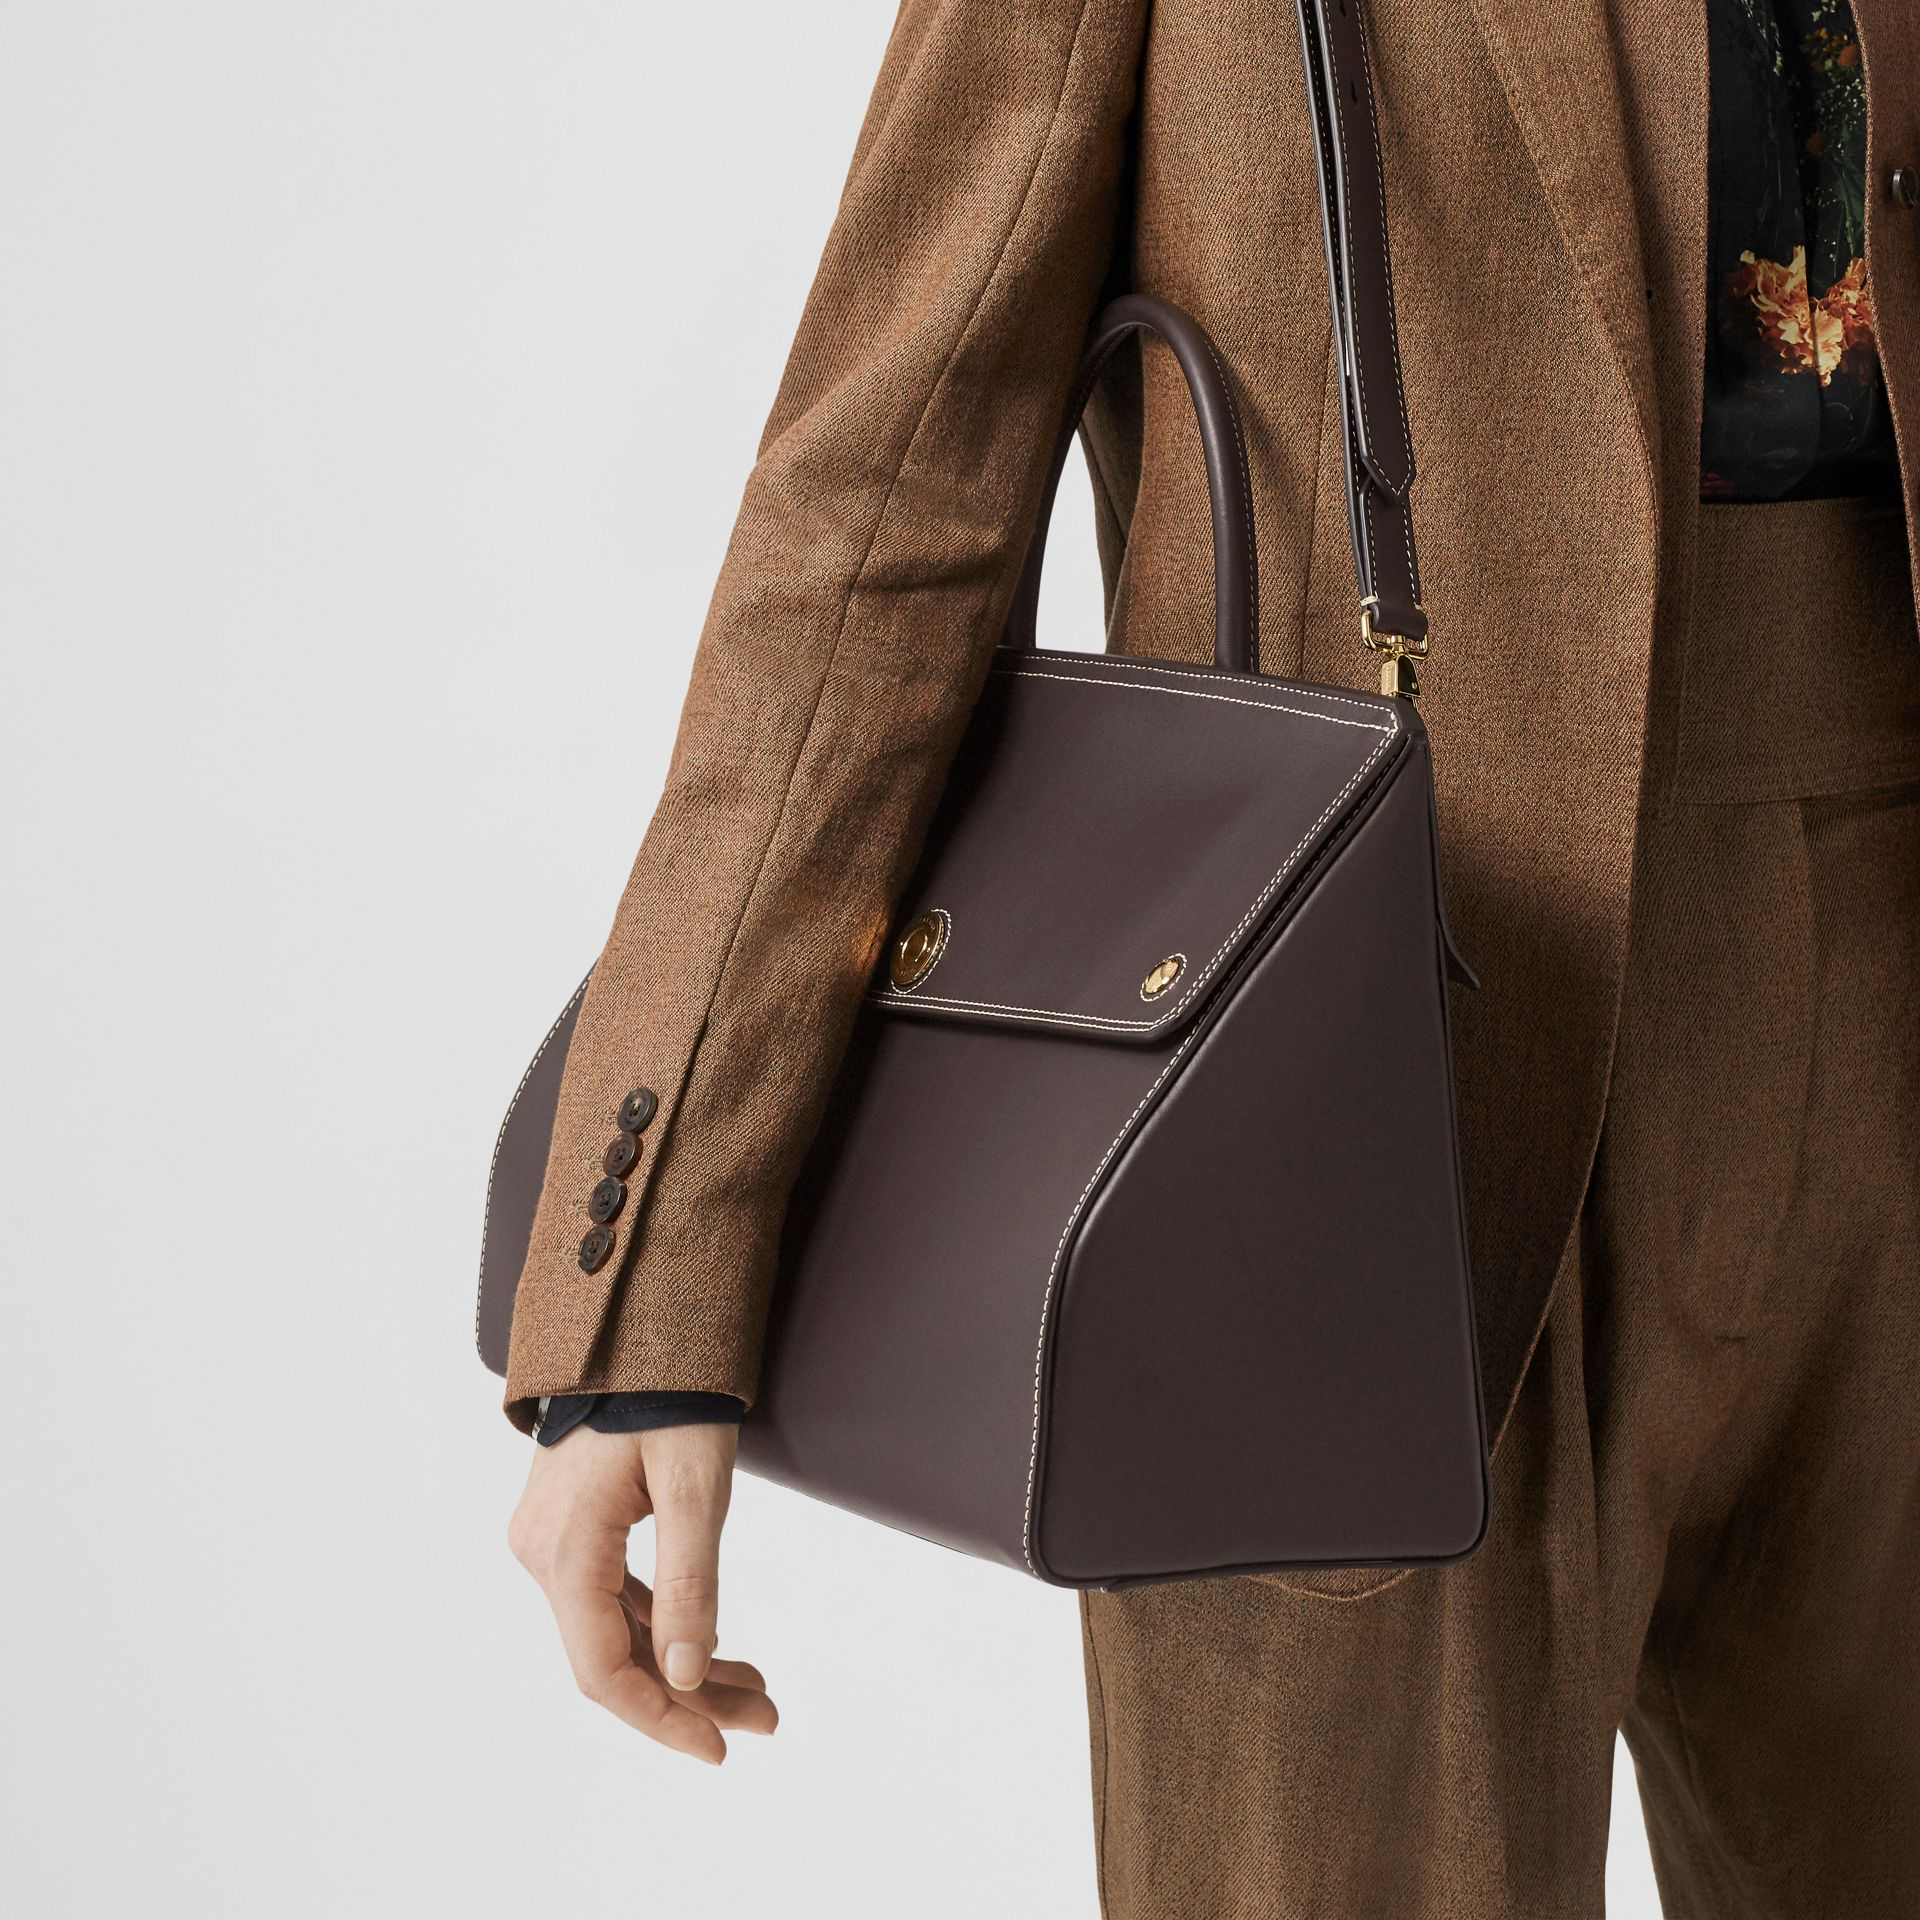 Medium Leather Elizabeth Bag in Coffee - Women | Burberry United States - gallery image 2